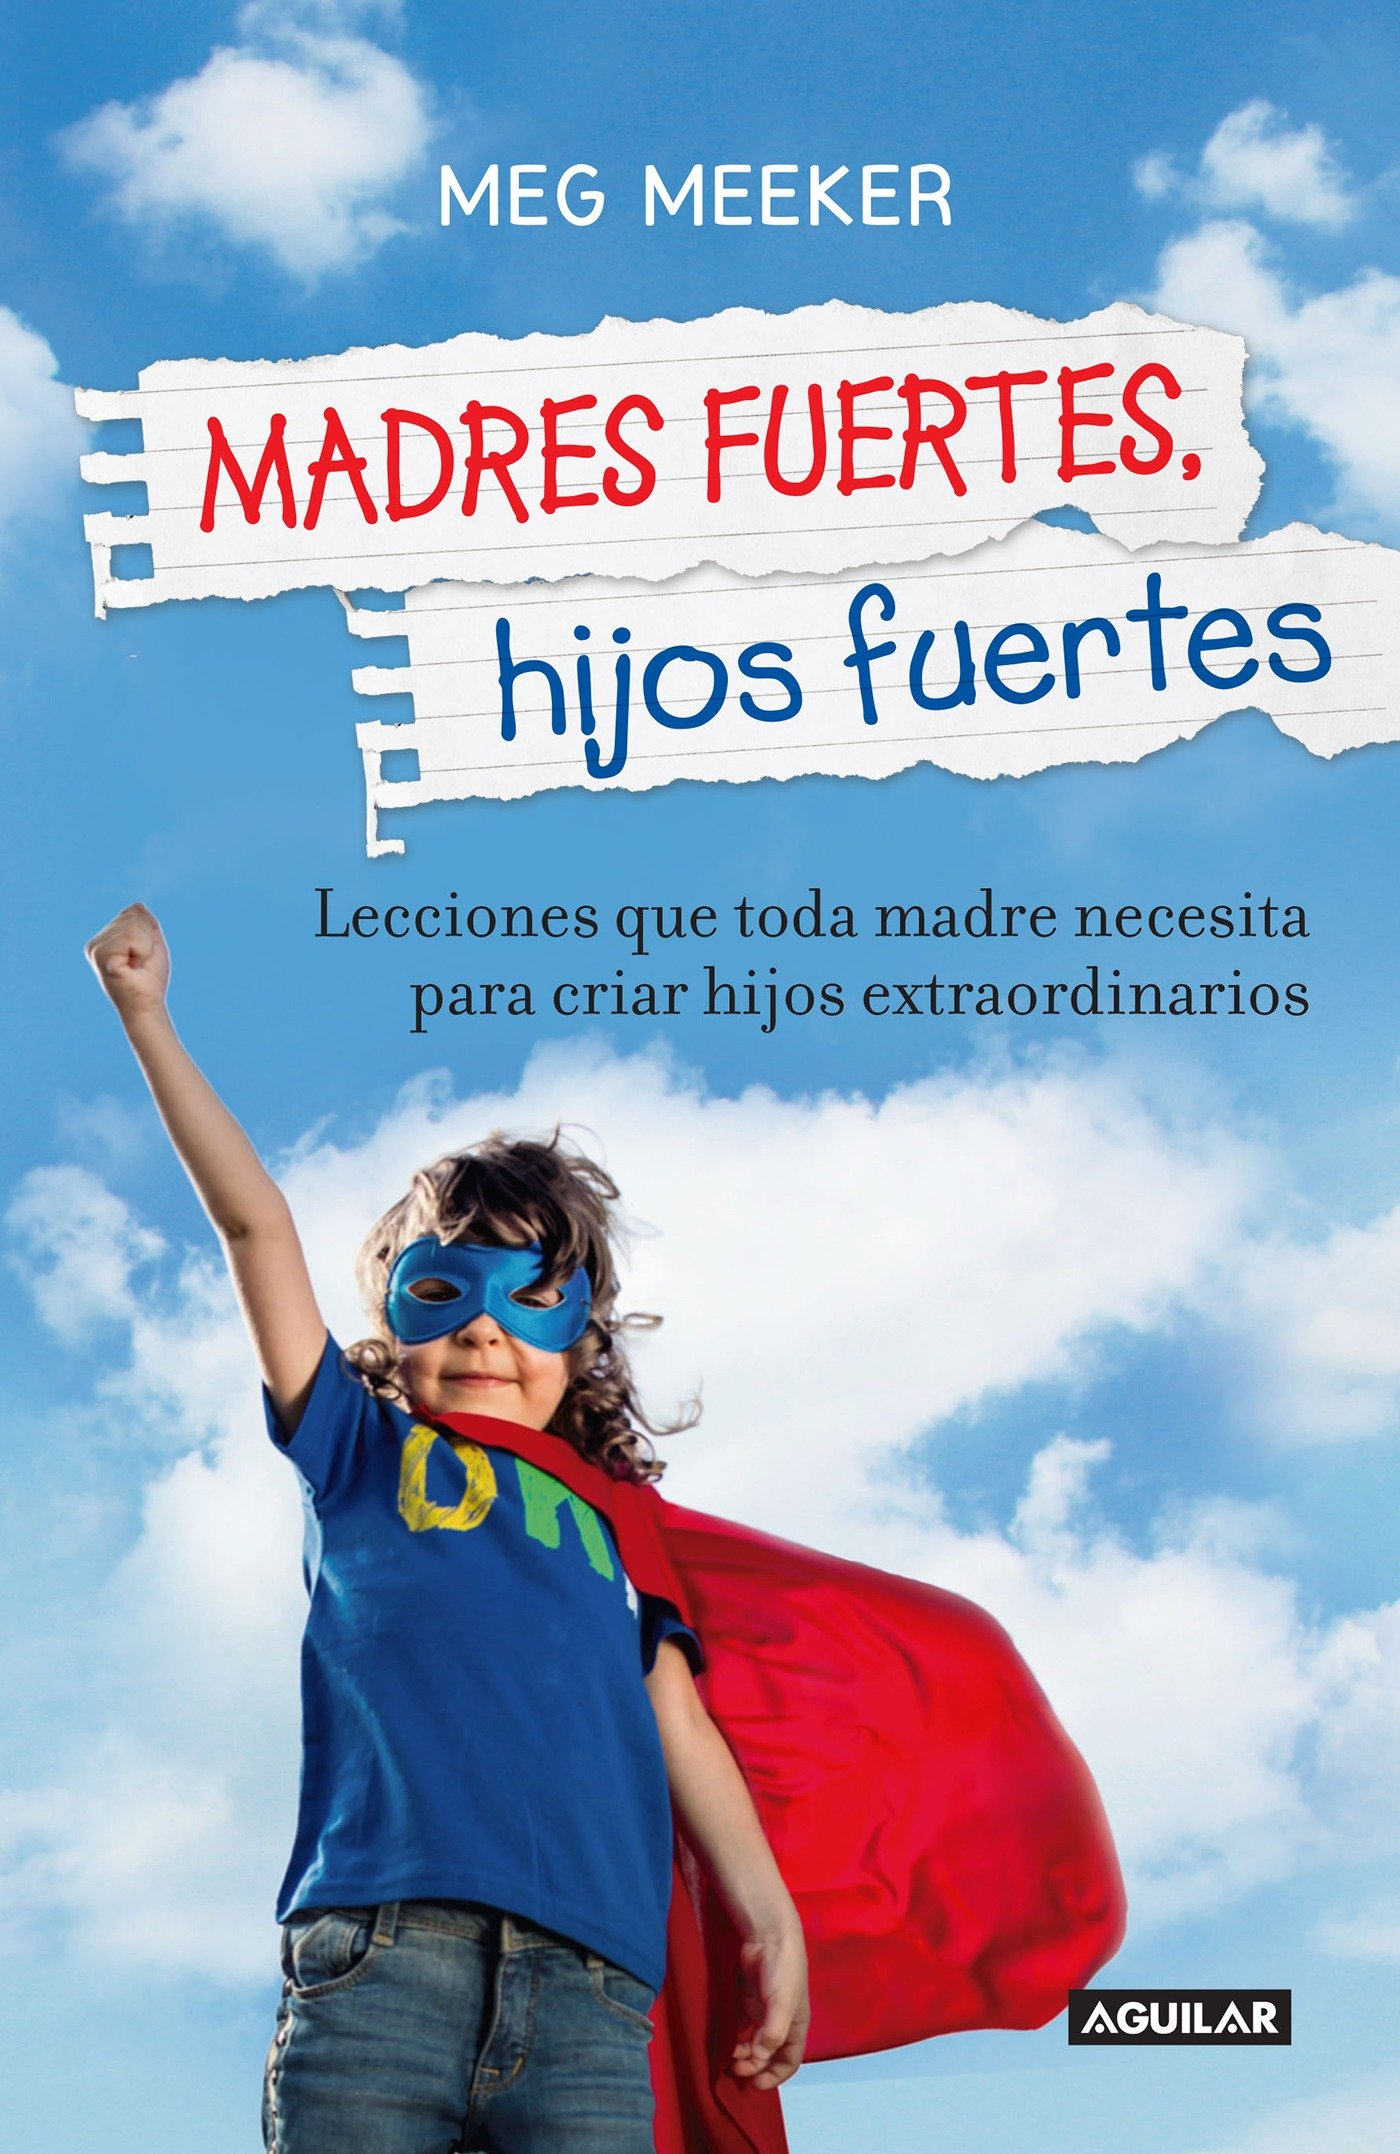 Madres fuertes, hijos fuertes (Spanish Edition): Meg Meeker ...